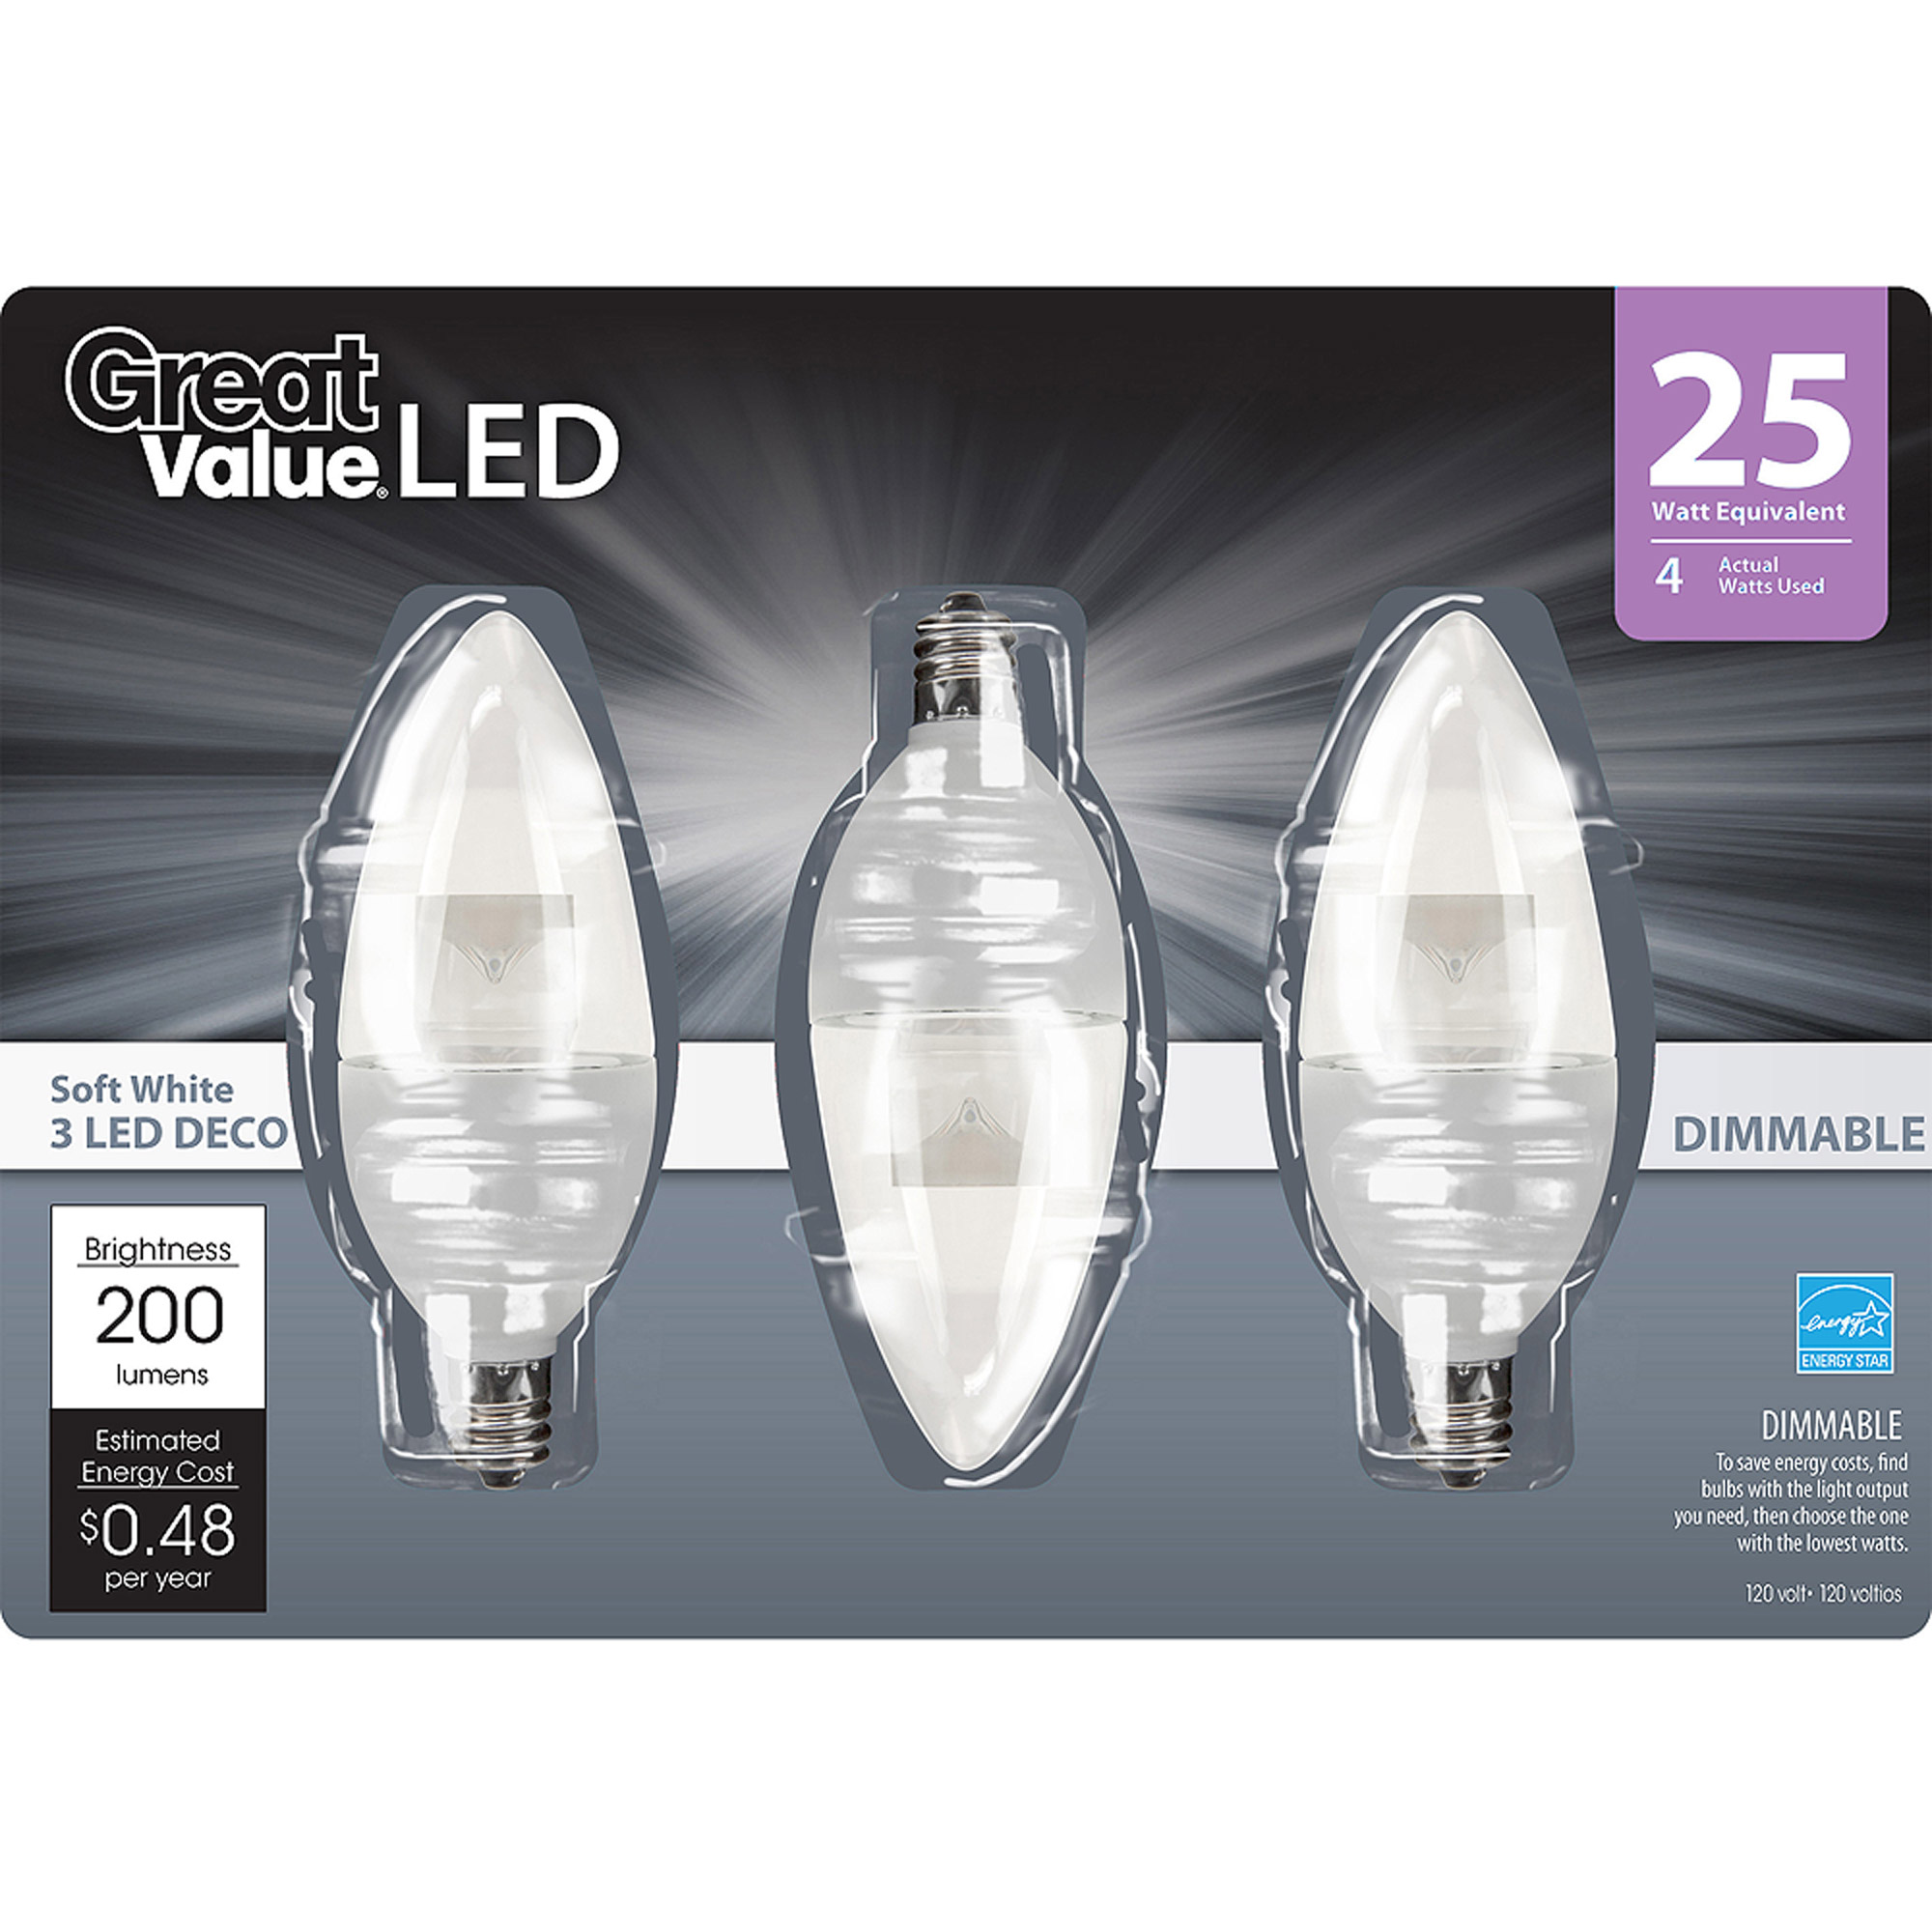 great value led light bulbs 4w 25w equivalent 4way decorative dimmable 3 pack walmartcom